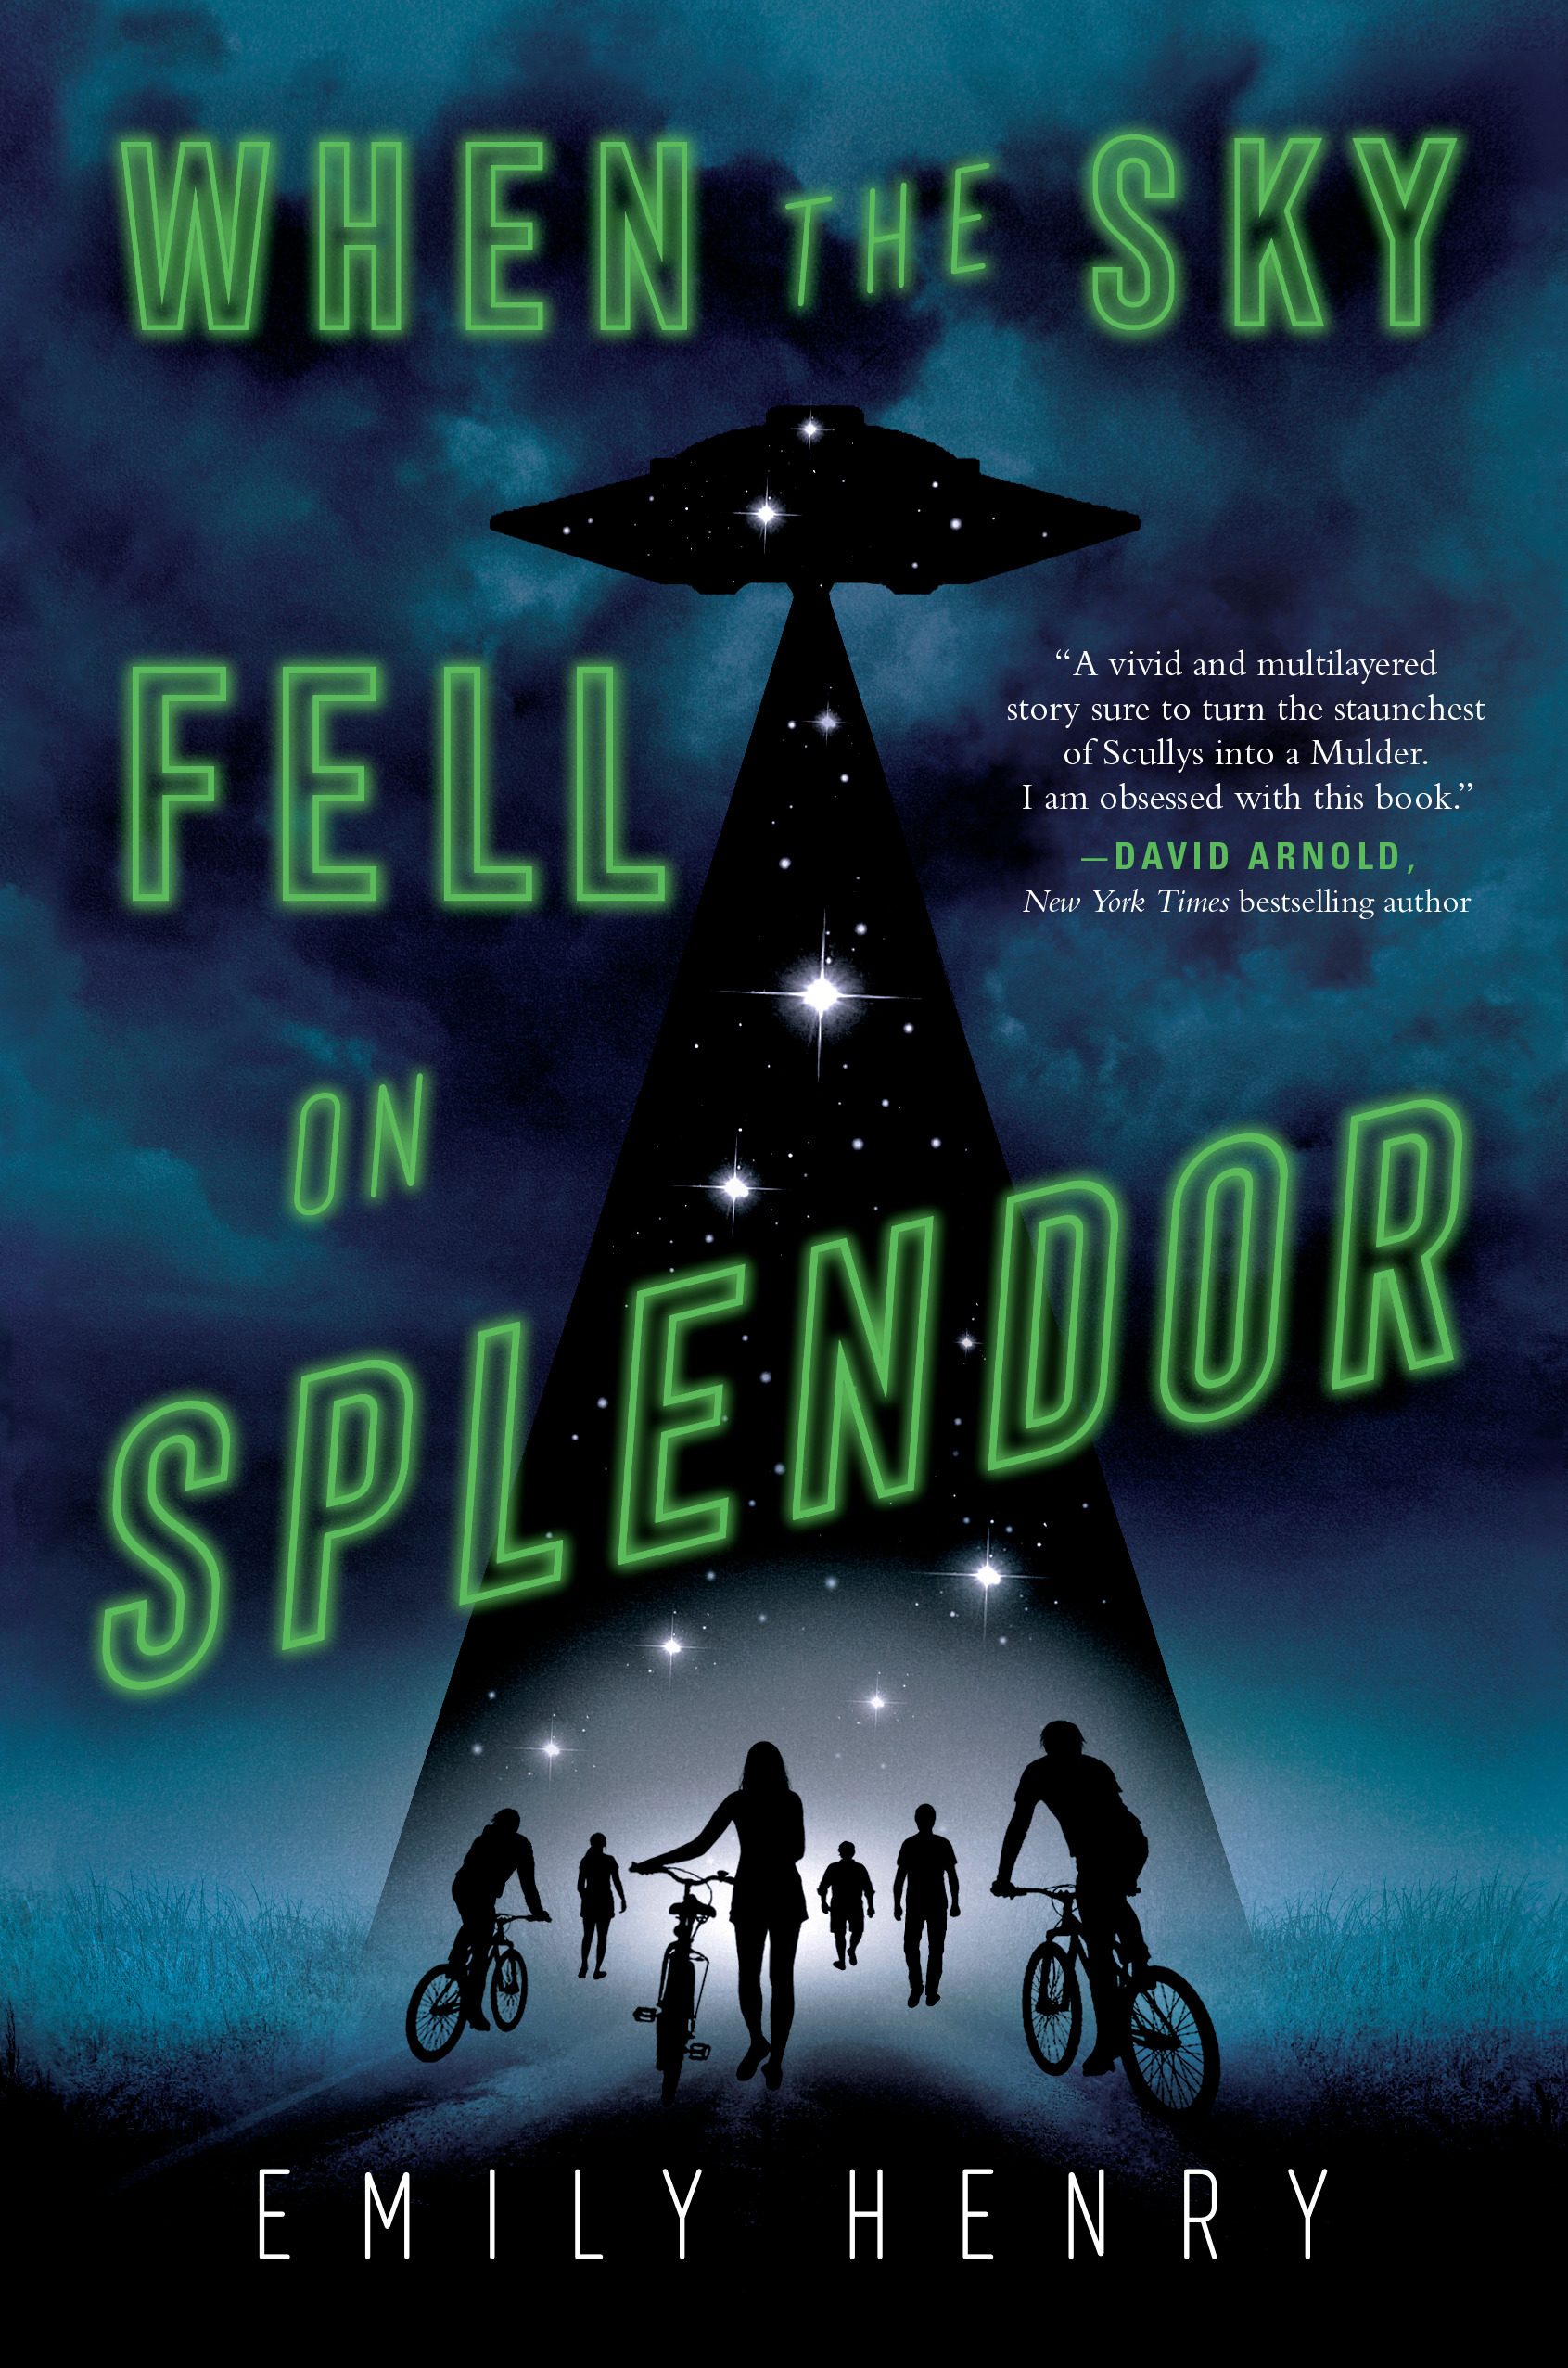 Blog Tour & Feature: When the Sky Fell on Splendor by Emily Henry